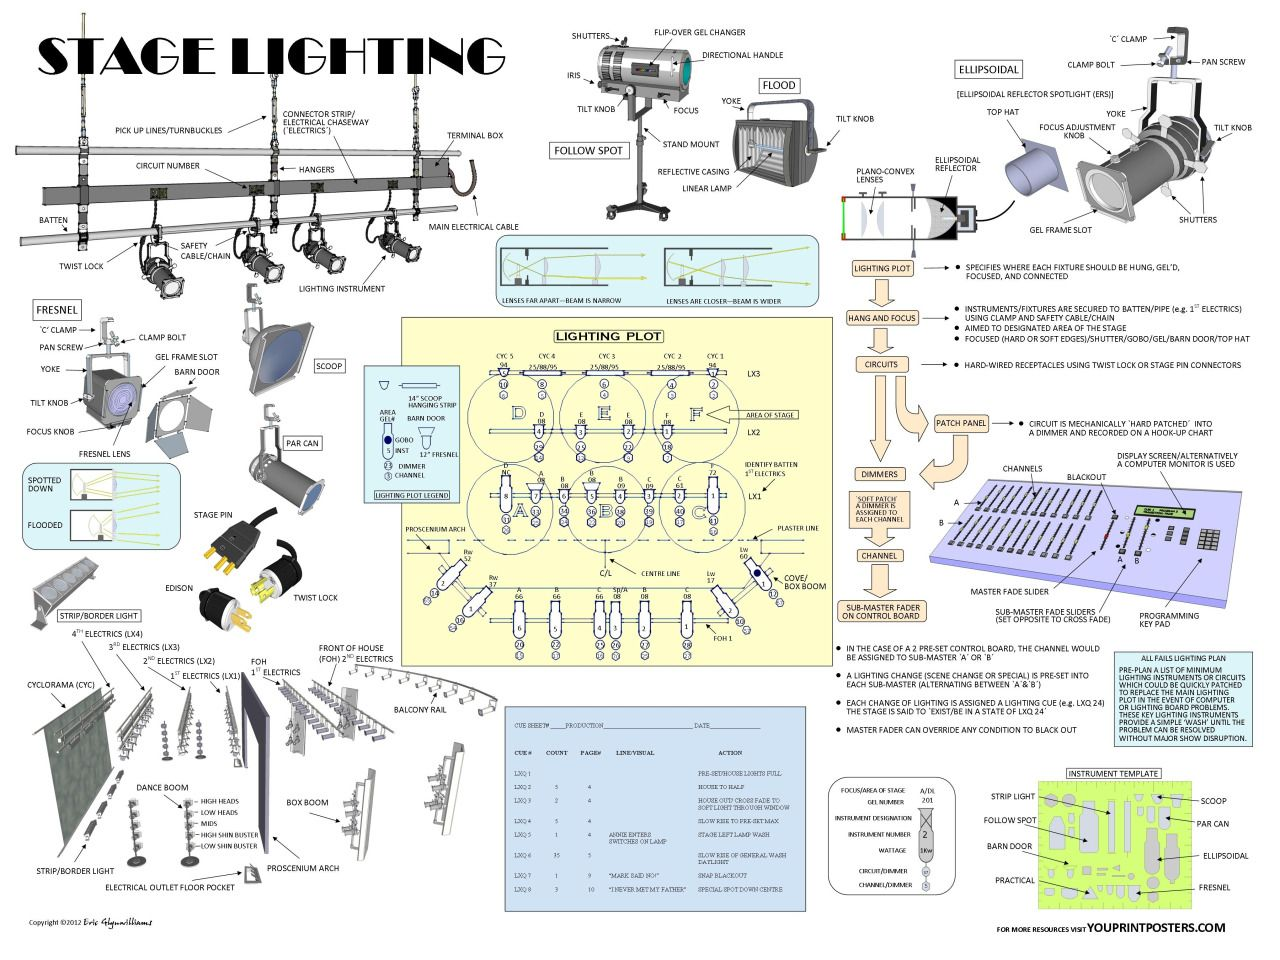 stage lighting thinking about theater dark side u003e u003e u003e u003e light side rh pinterest com Church Stage Lighting Diagram Church Stage Design Layout Lighting